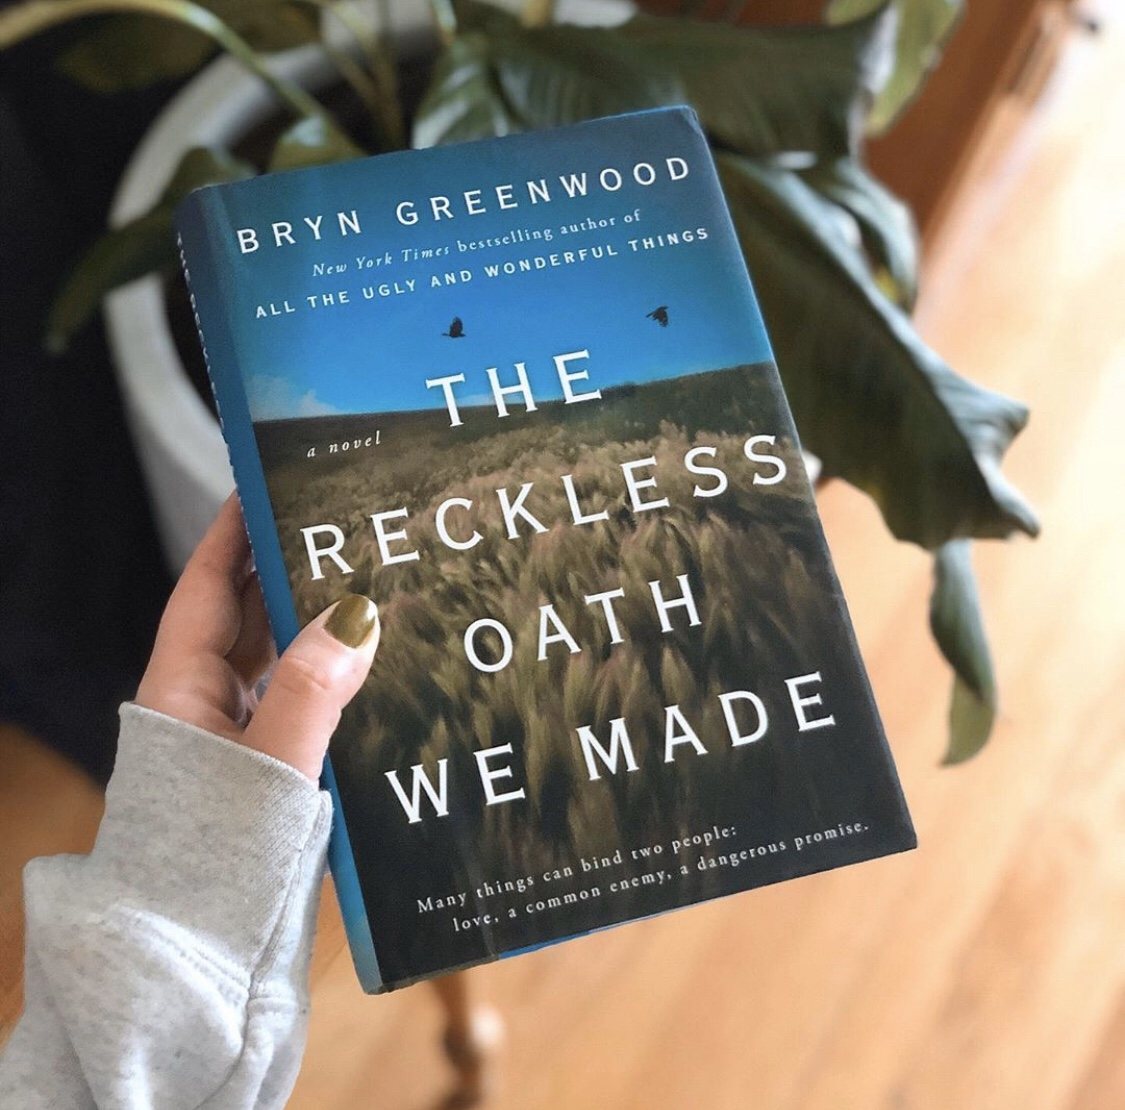 The Reckless Oath We Made | Reading Week 9.30.19 | TBR, etc.